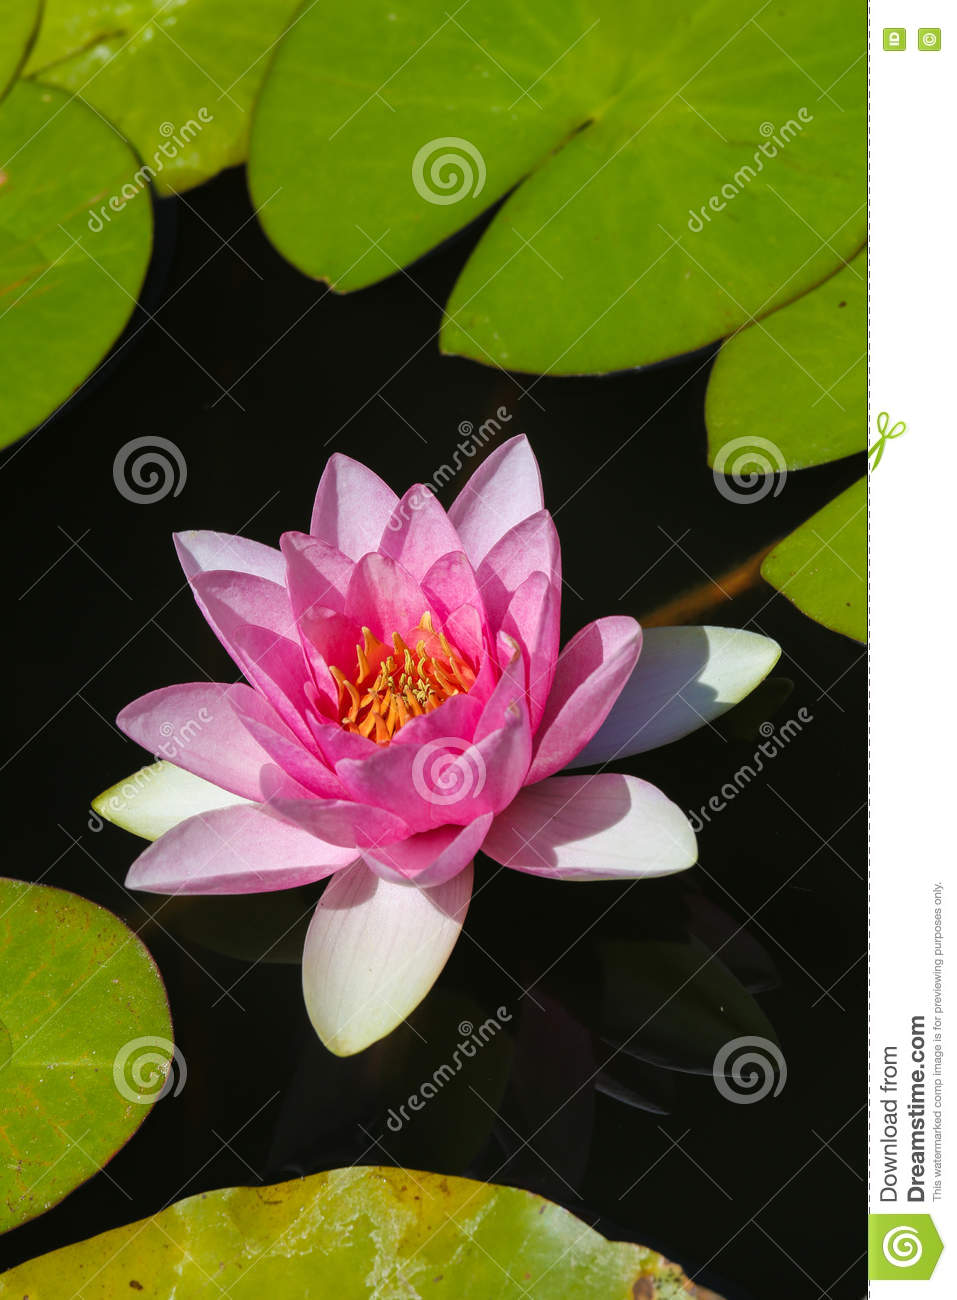 Beau waterlily